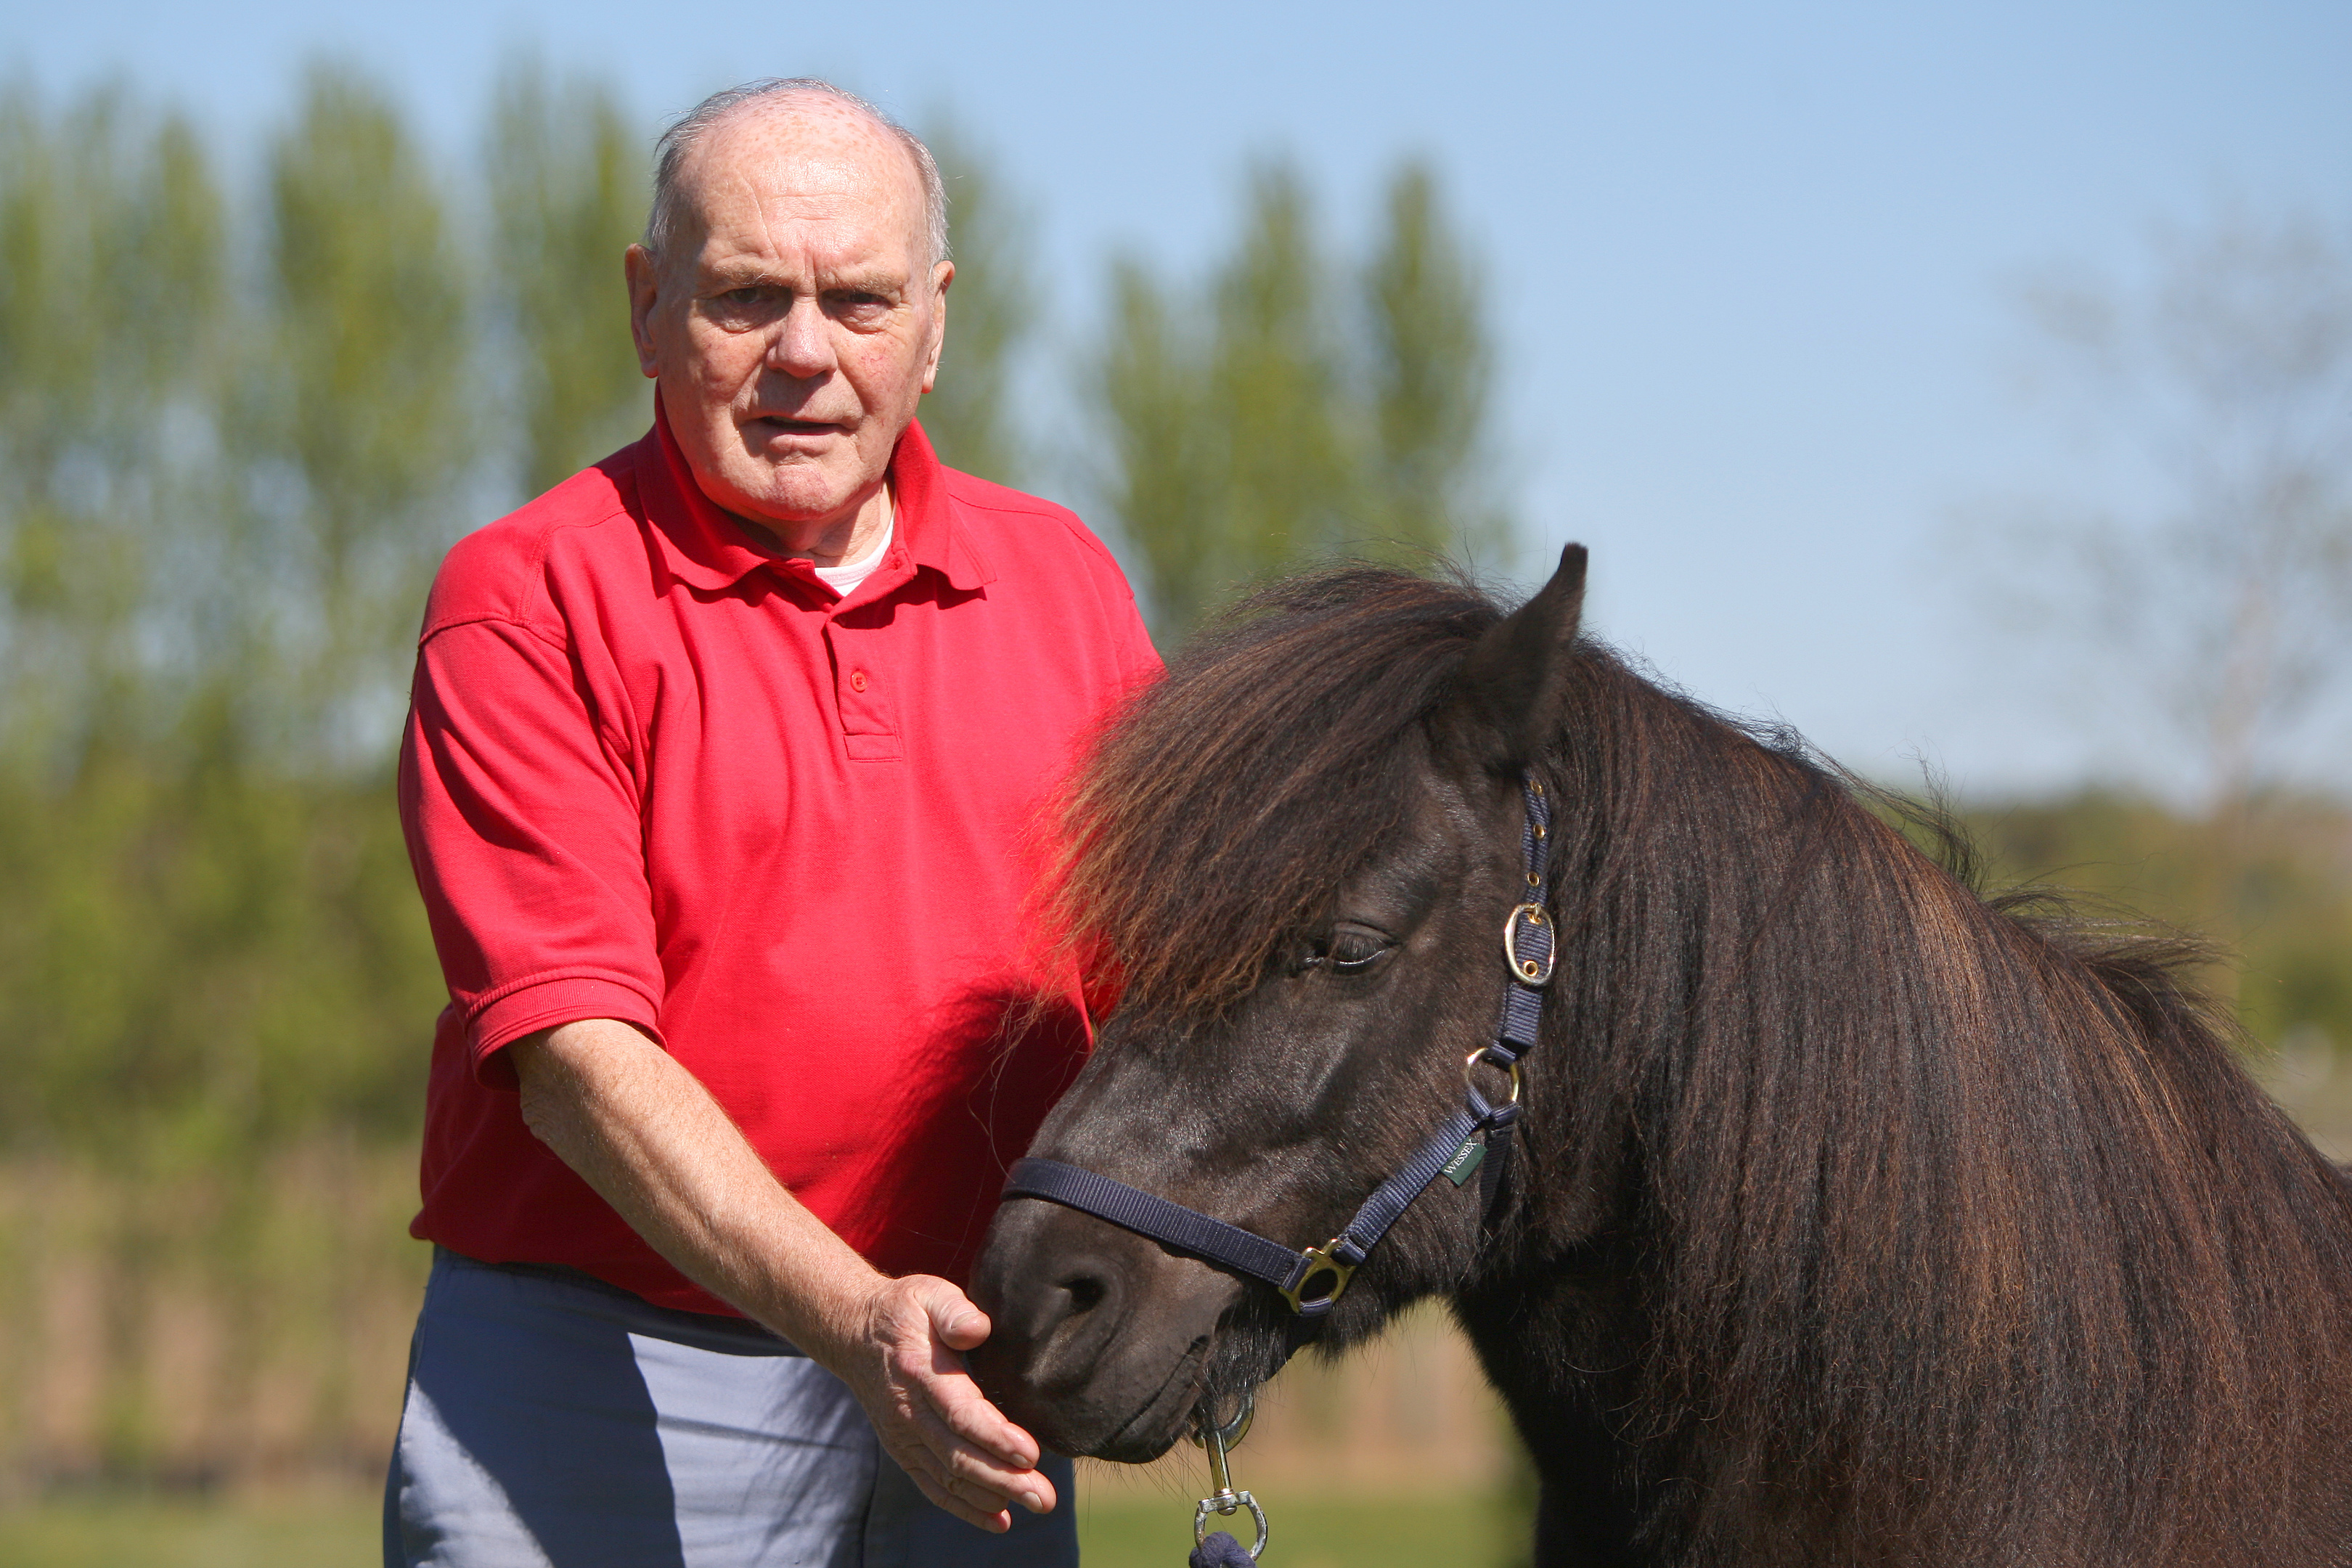 Ken contributed hugely to the world of equestrian.